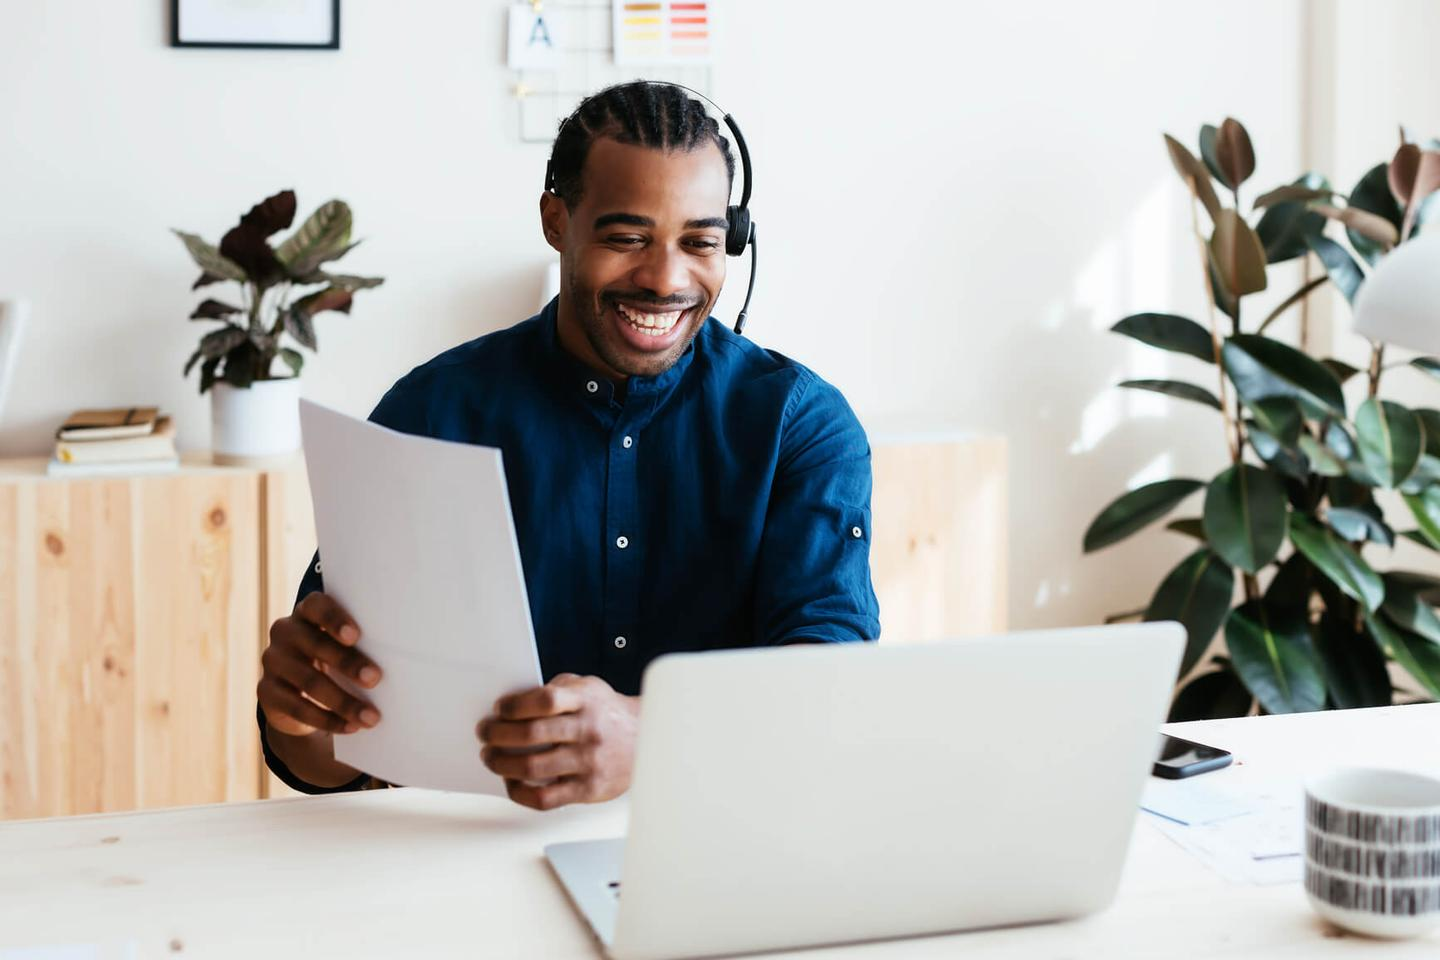 Customer service agent smiling with laptop